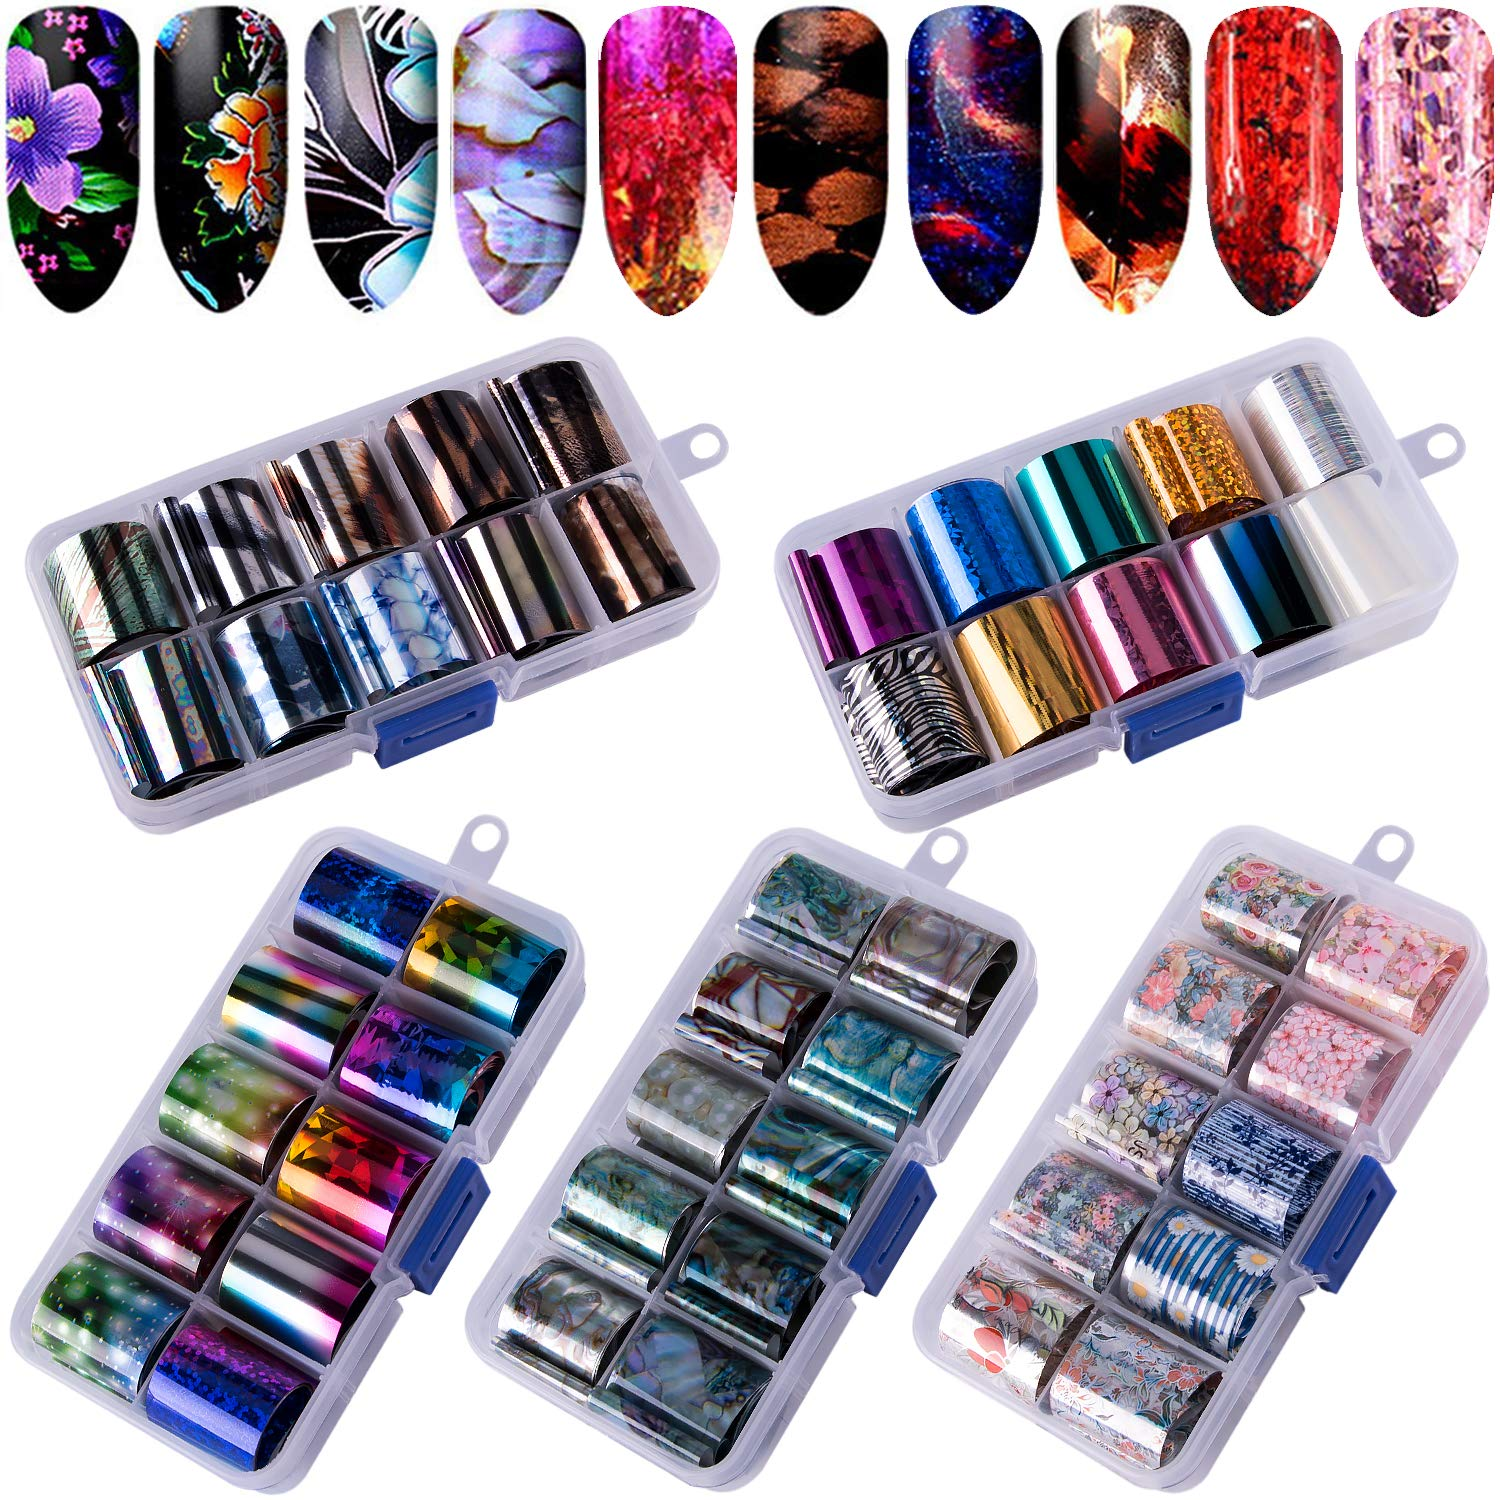 Duufin 50 Colors Nail Foil Transfer Sticker Starry Sky Foil Nail Art Stickers Nail Foil Wraps Nail Adhesive Foil Transfer Glitters Acrylic DIY Decoration Kit by Duufin